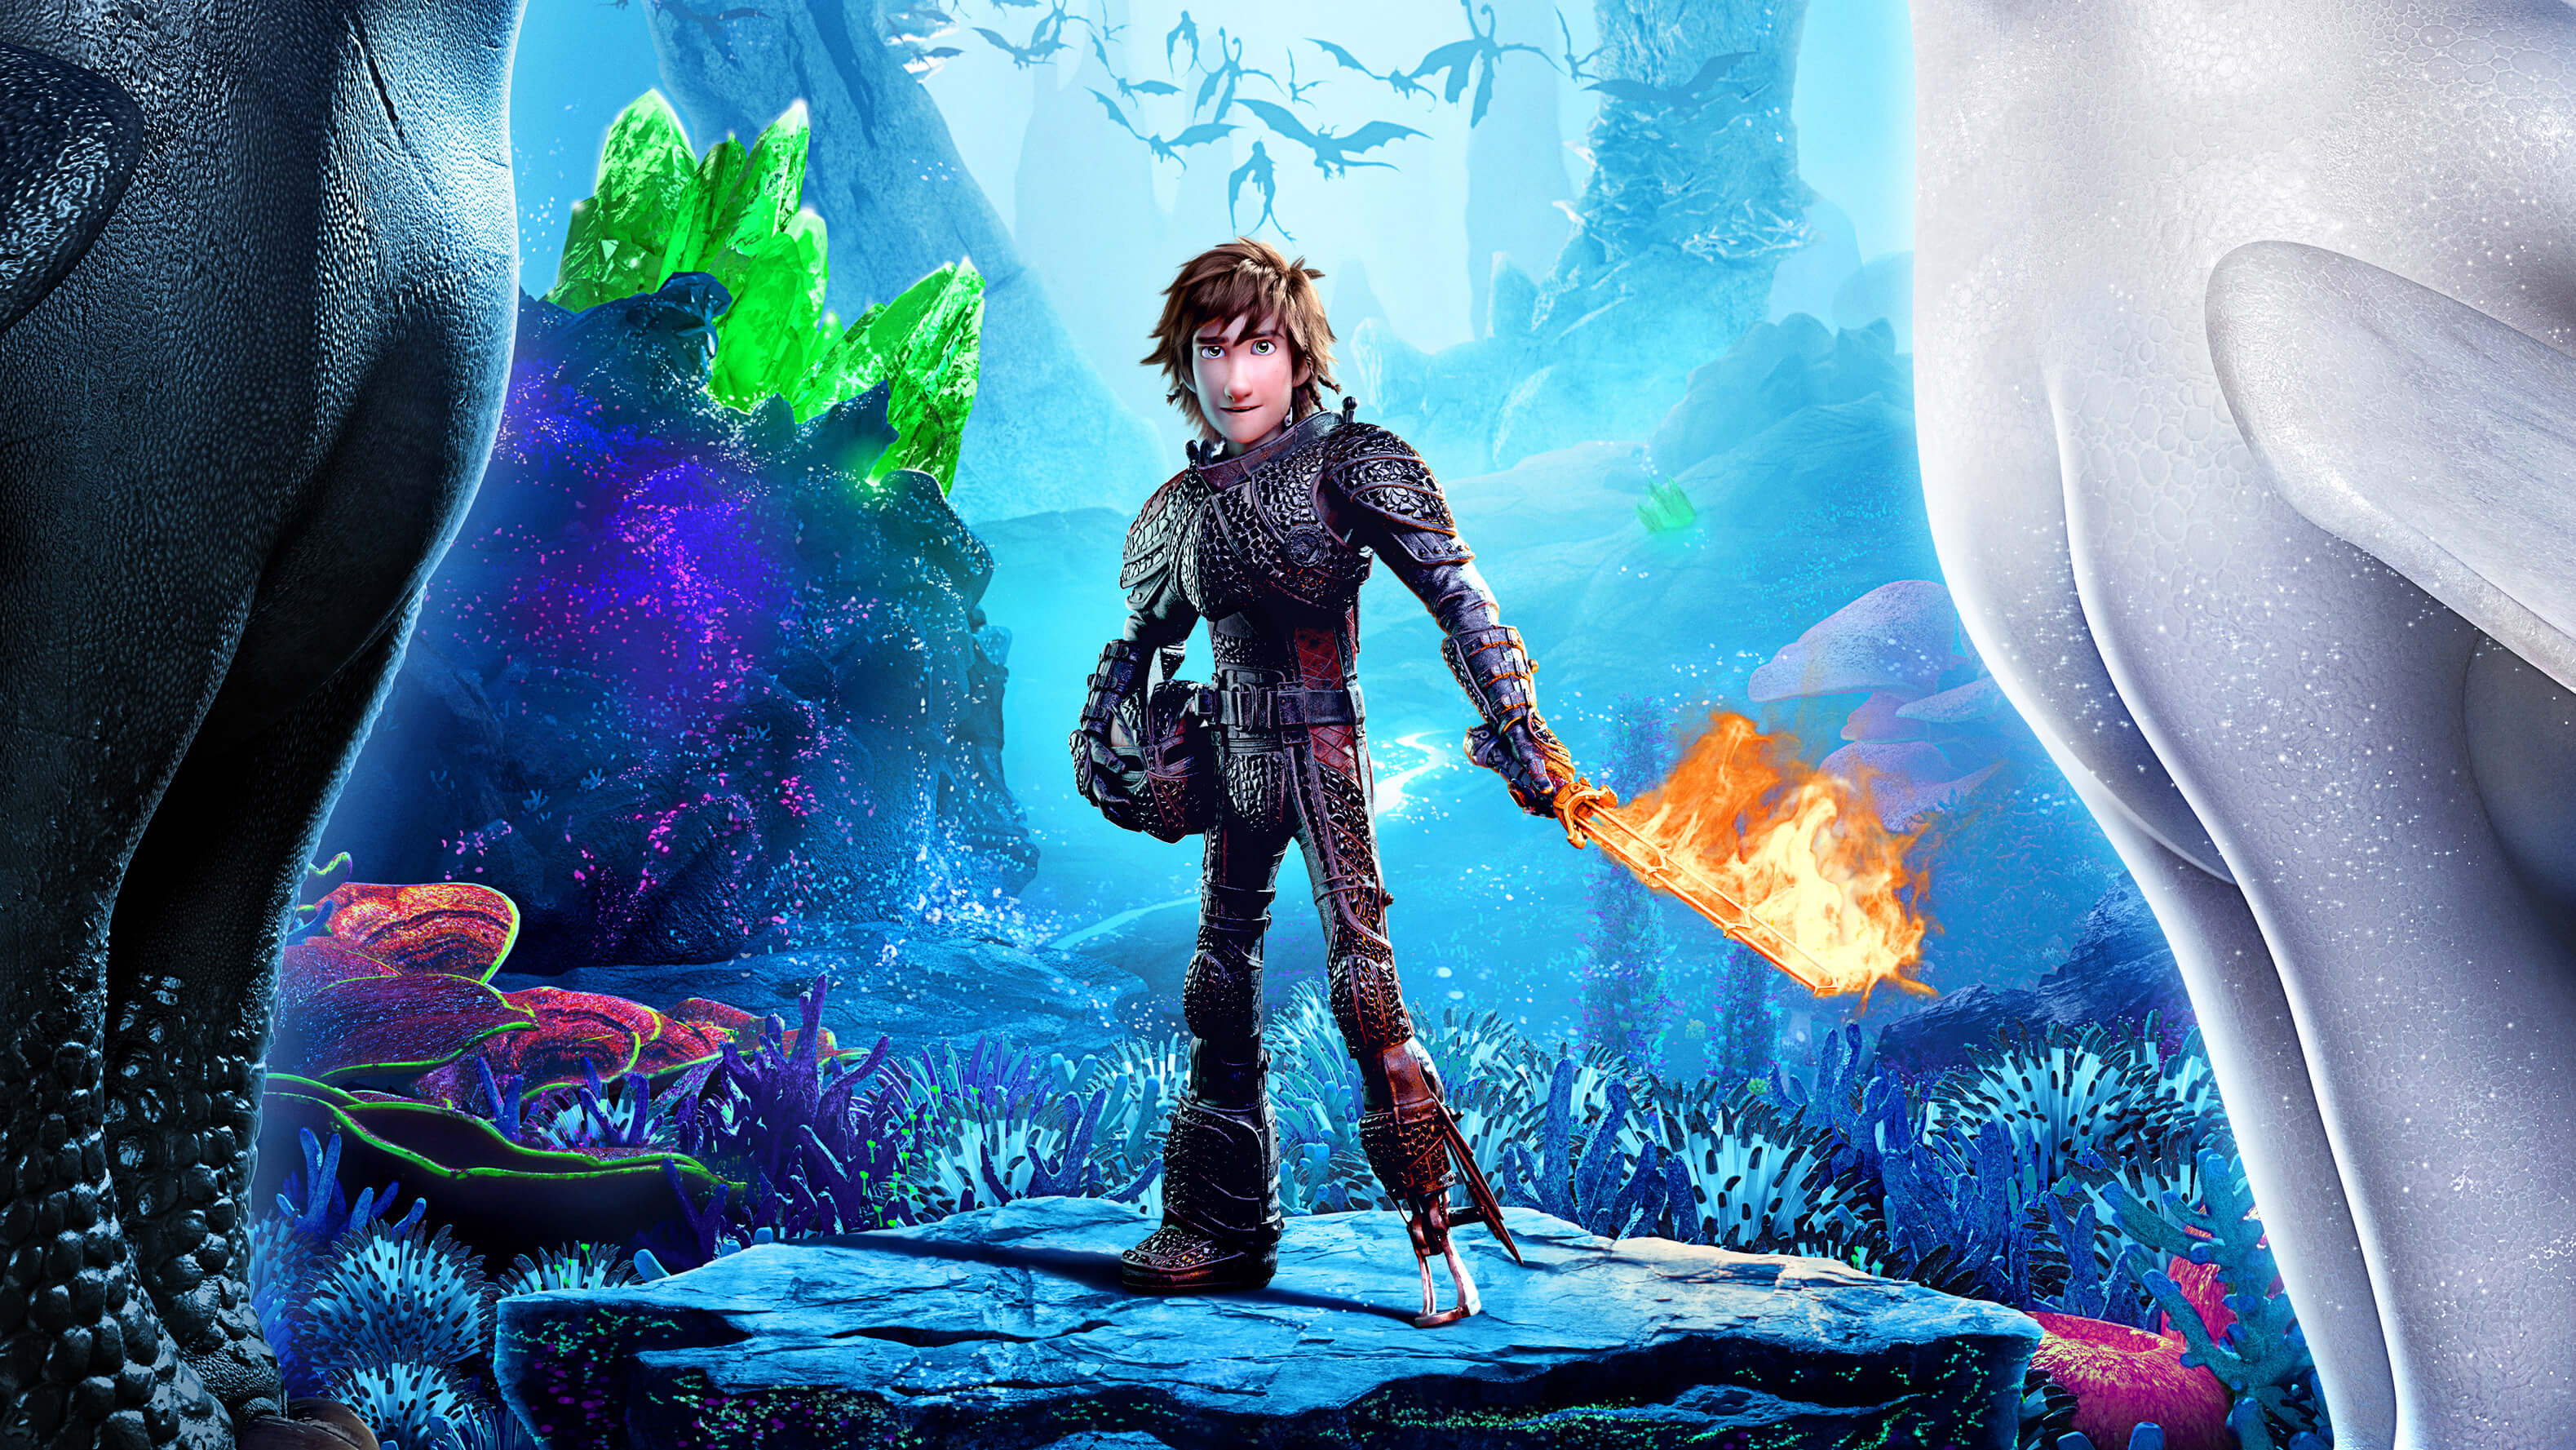 How To Train Your Dragon 3 Widescreen Wallpaper 66677 3158x1777px